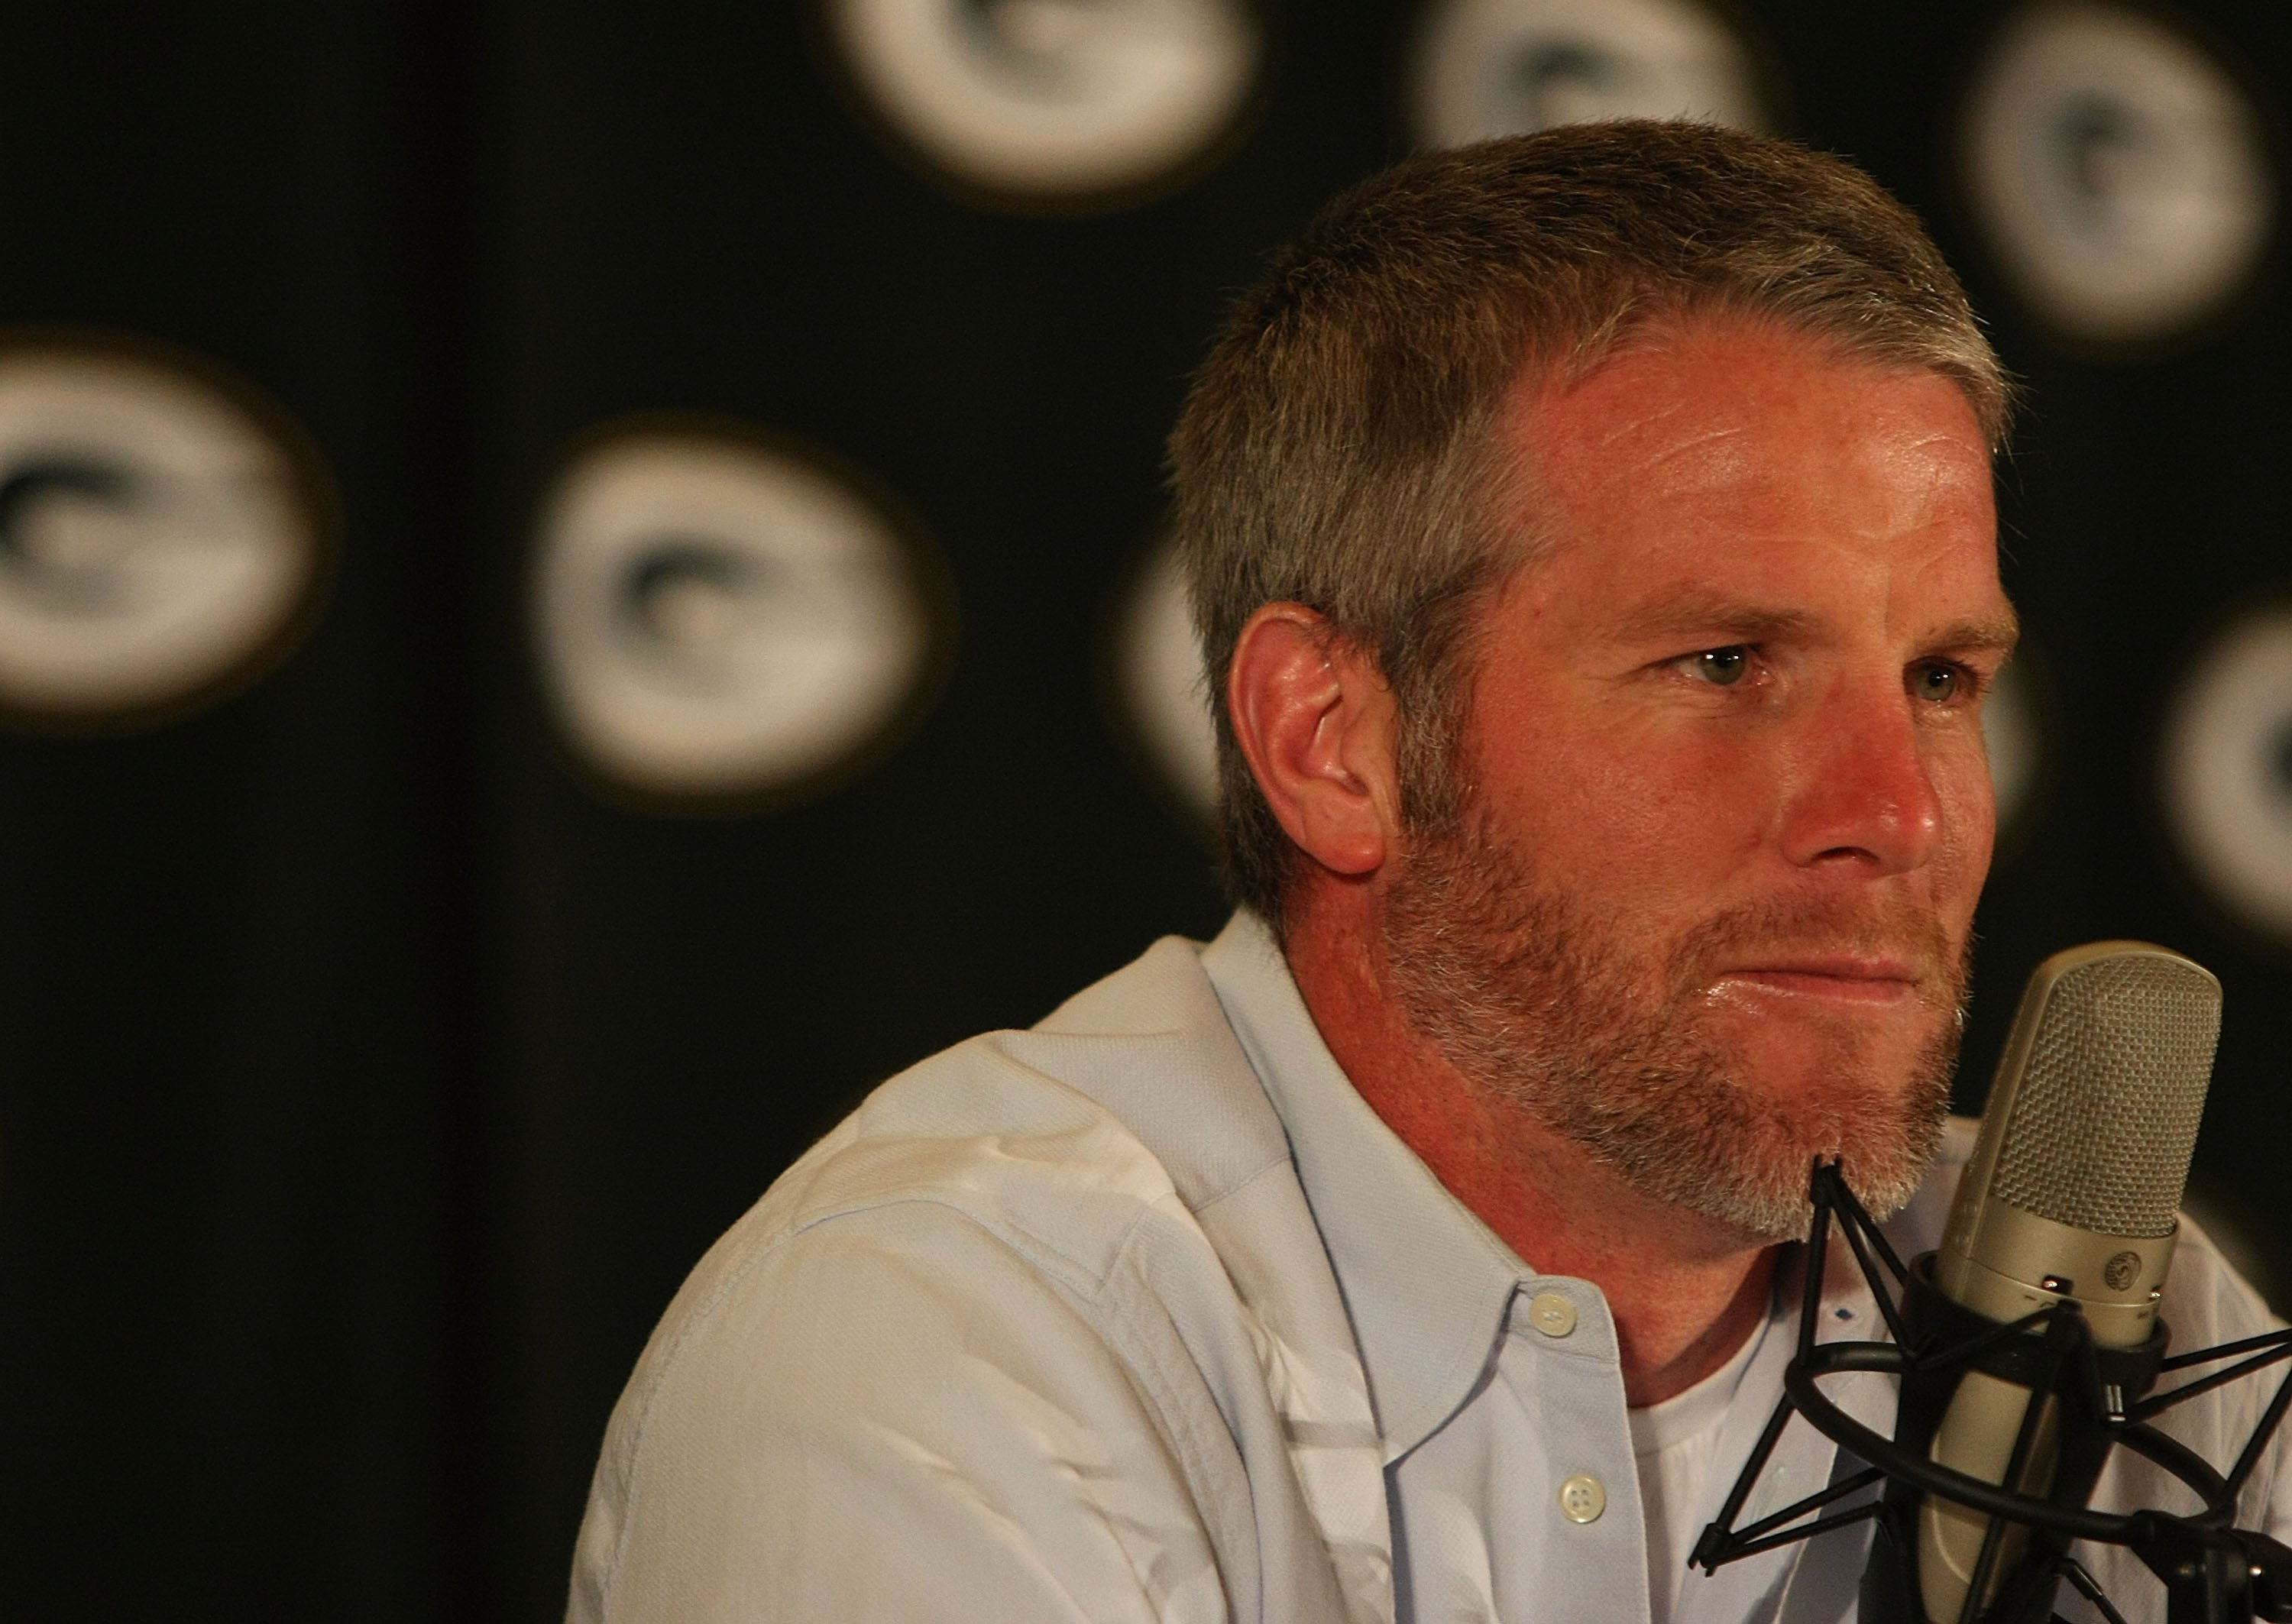 GREEN BAY, WI - MARCH 06: Quarterback Brett Favre of the Green Bay Packers listens to a question at his retirement press conference on March 6, 2008 at Lambeau Field in Green Bay, Wisconsin. (Photo by Jonathan Daniel/Getty Images)